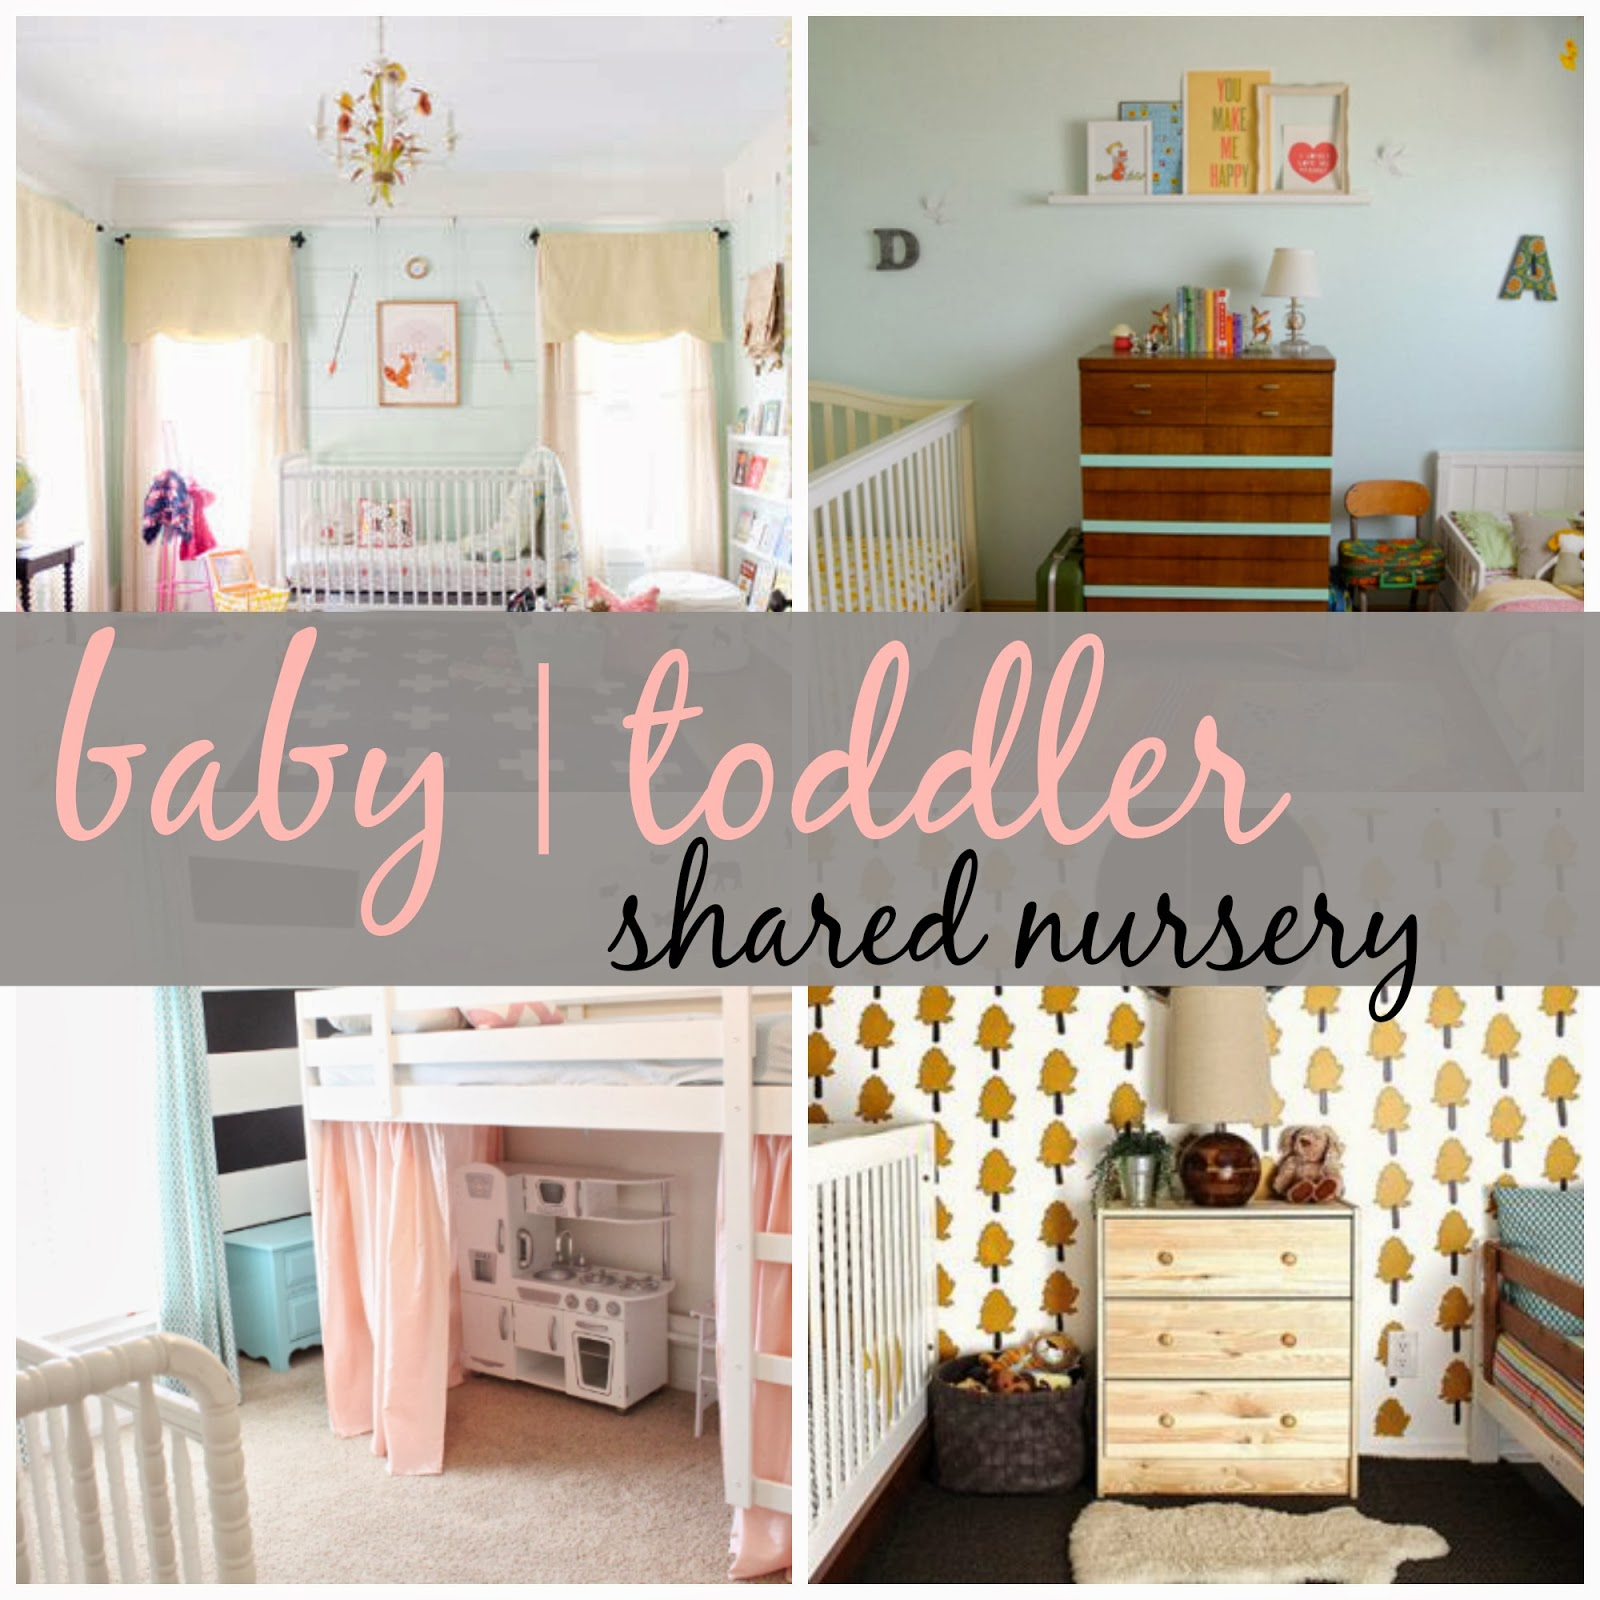 Joyful life shared nursery baby toddler rooms for Baby and toddler bedroom ideas